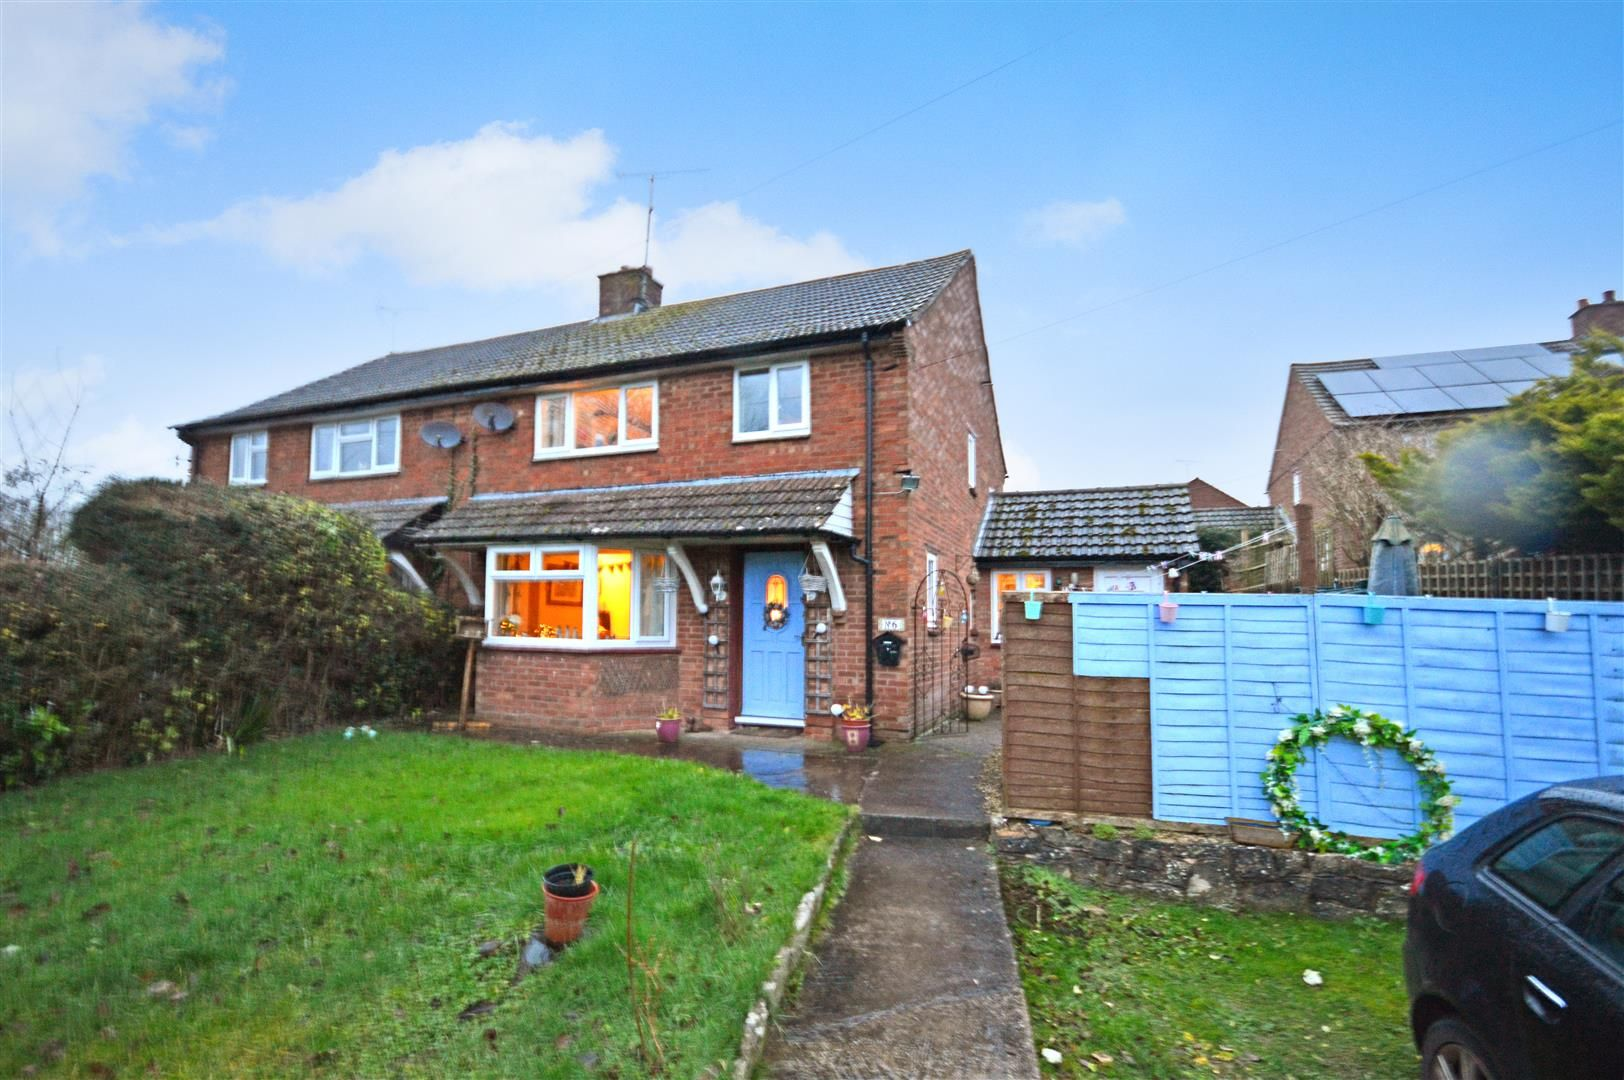 3 bed semi-detached for sale in Much Birch, HR2